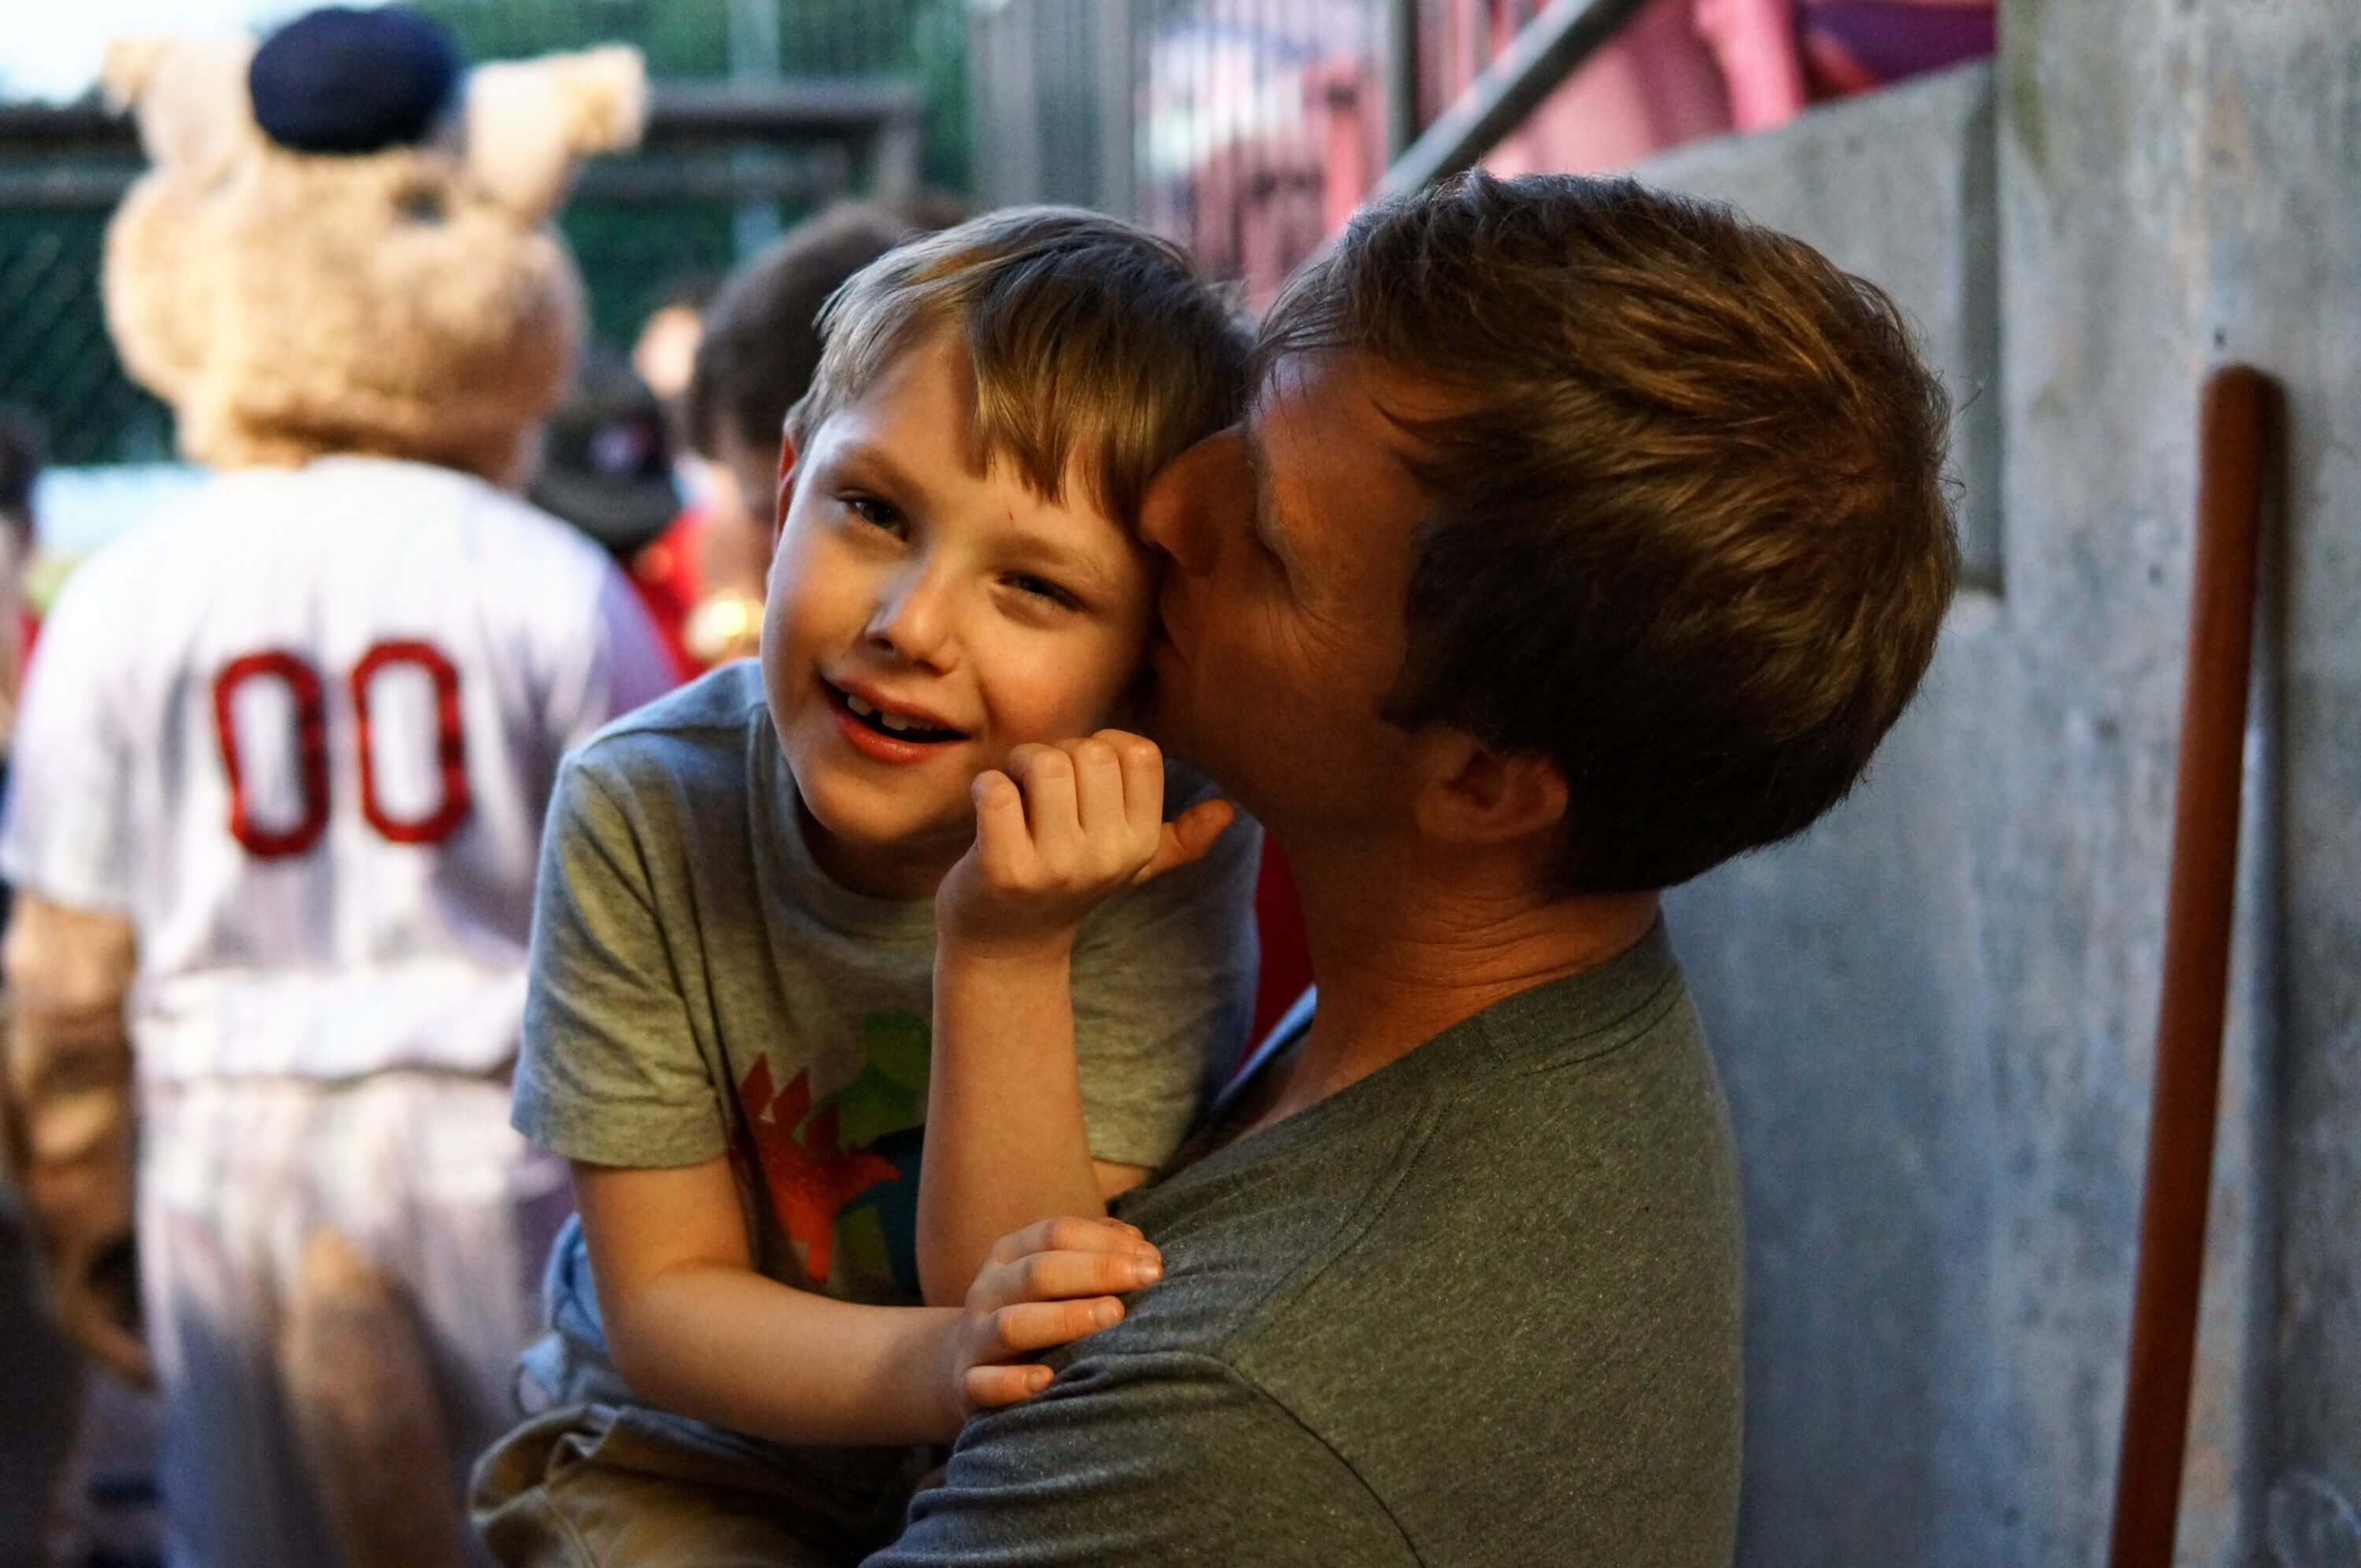 Father kissing son on cheek